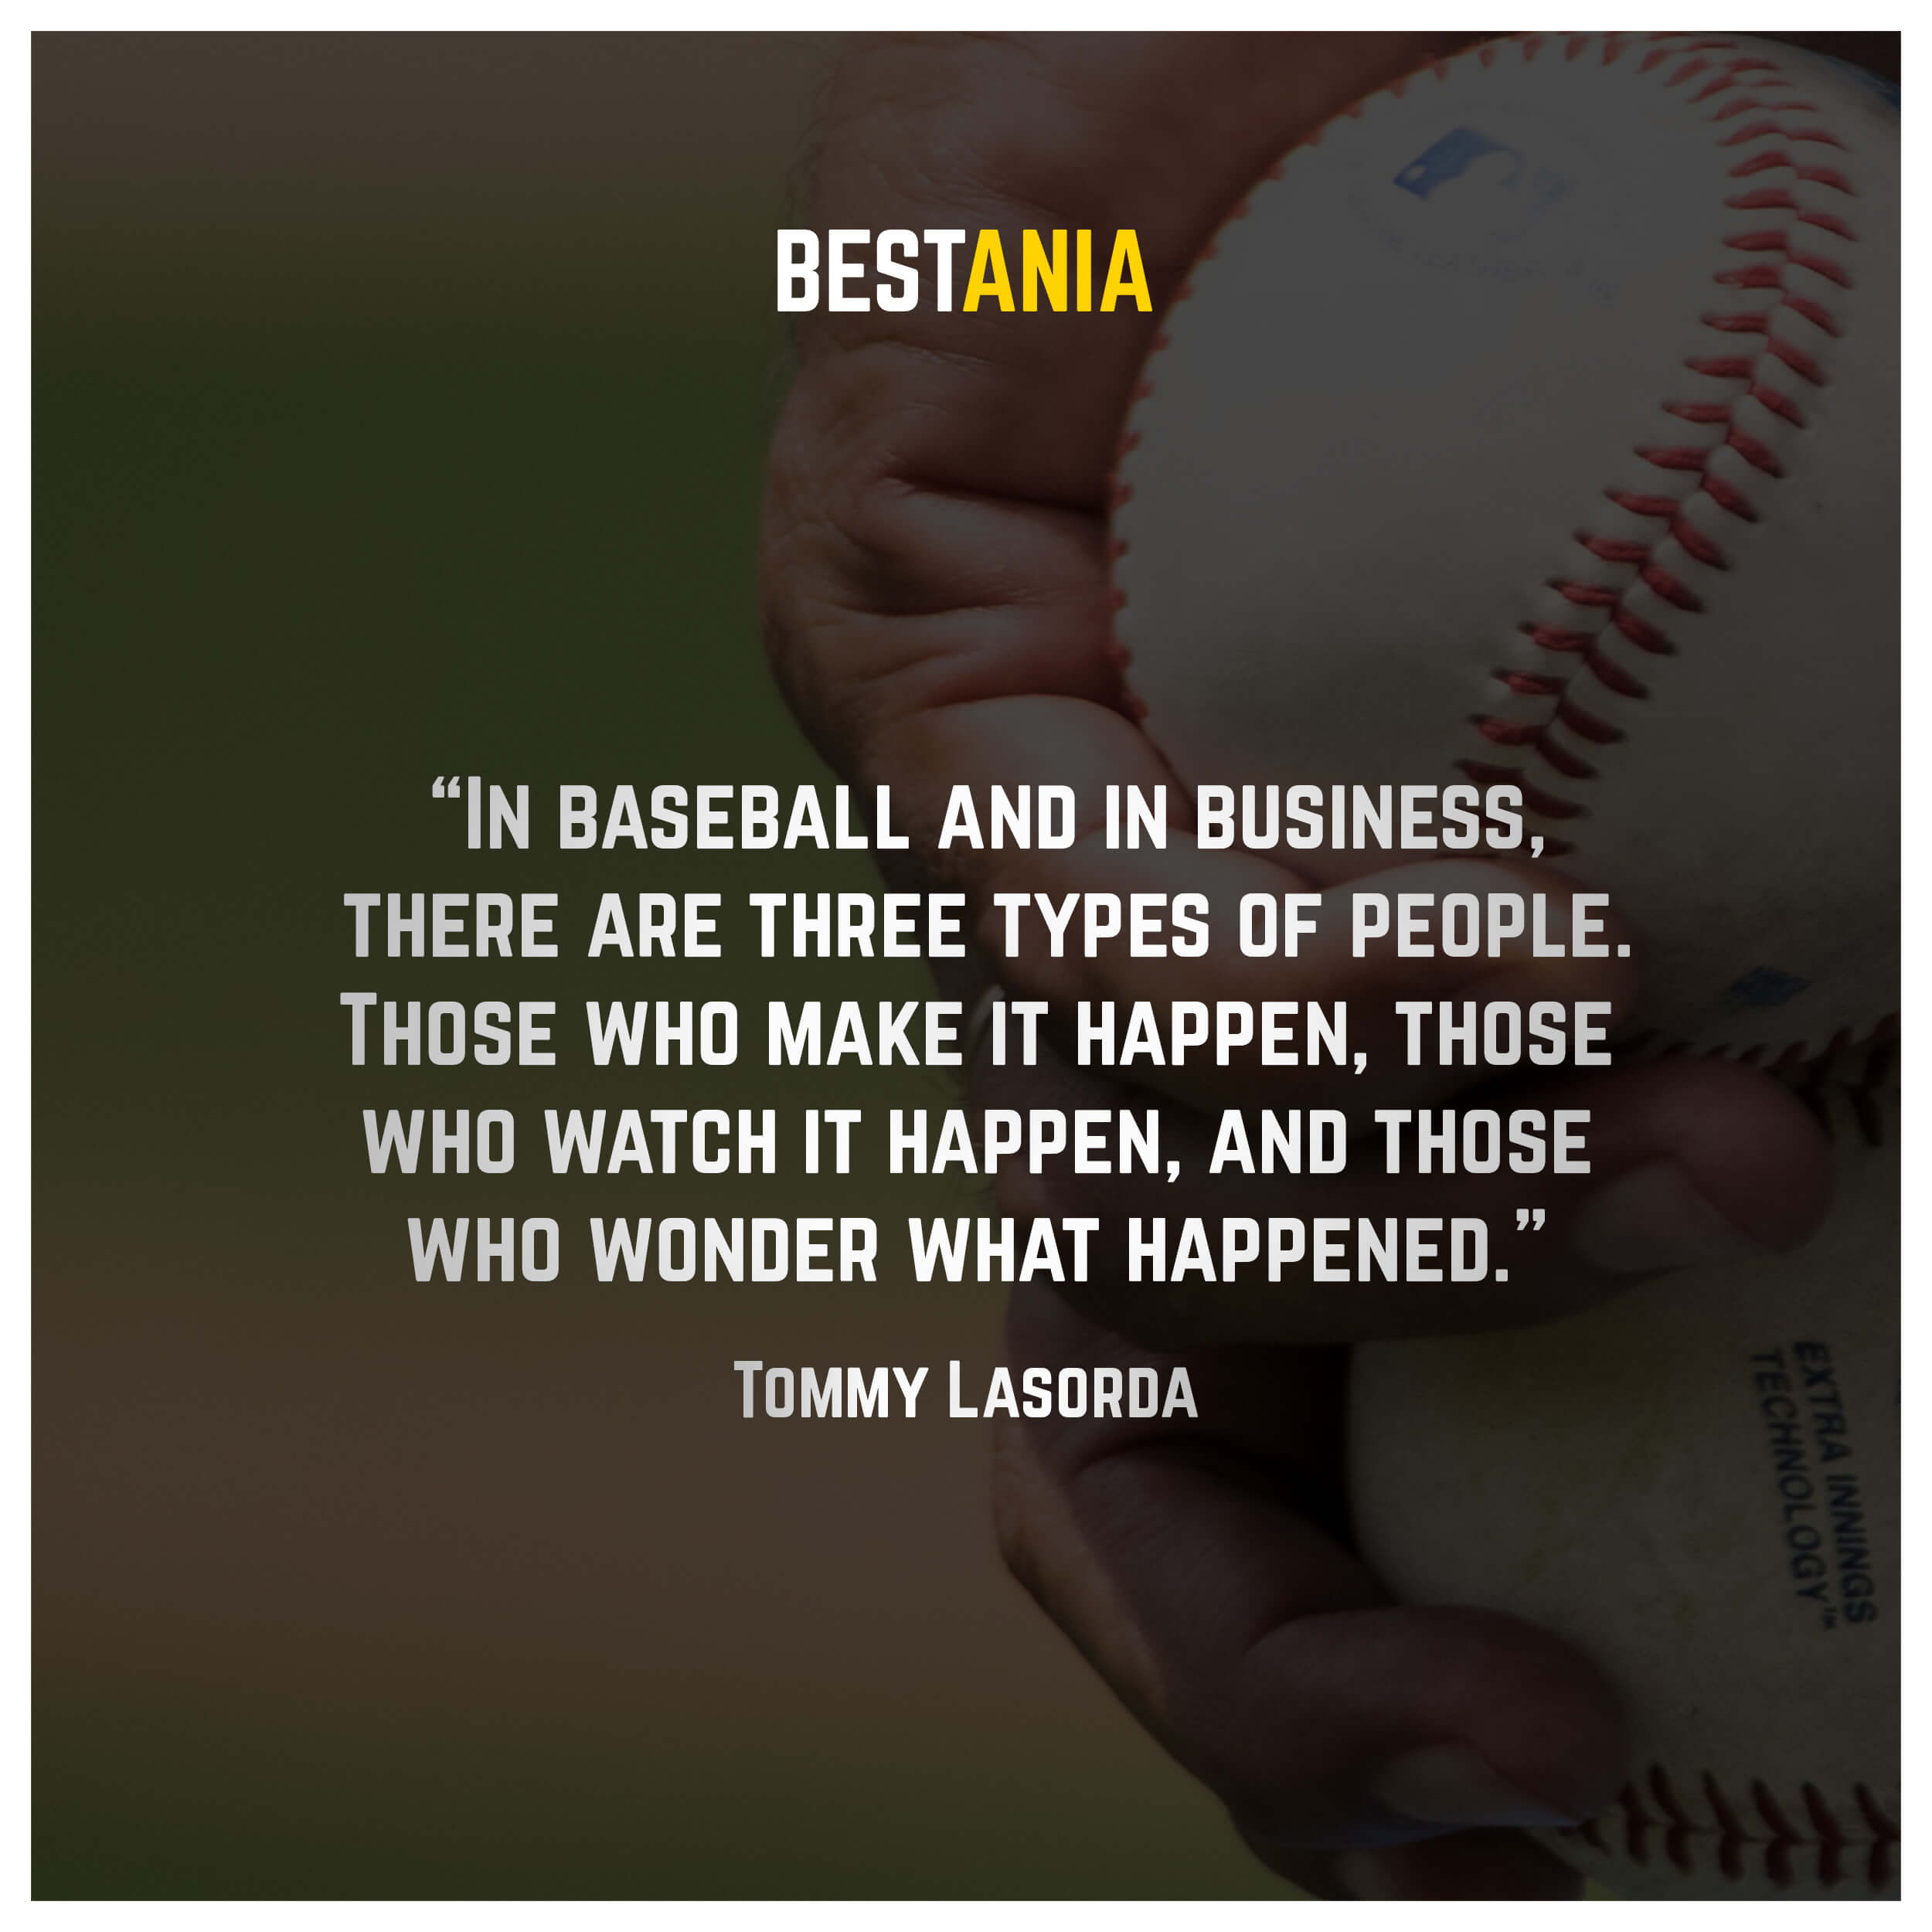 """In baseball and in business, there are three types of people. Those who make it happen, those who watch it happen, and those who wonder what happened."" – Tommy Lasorda"